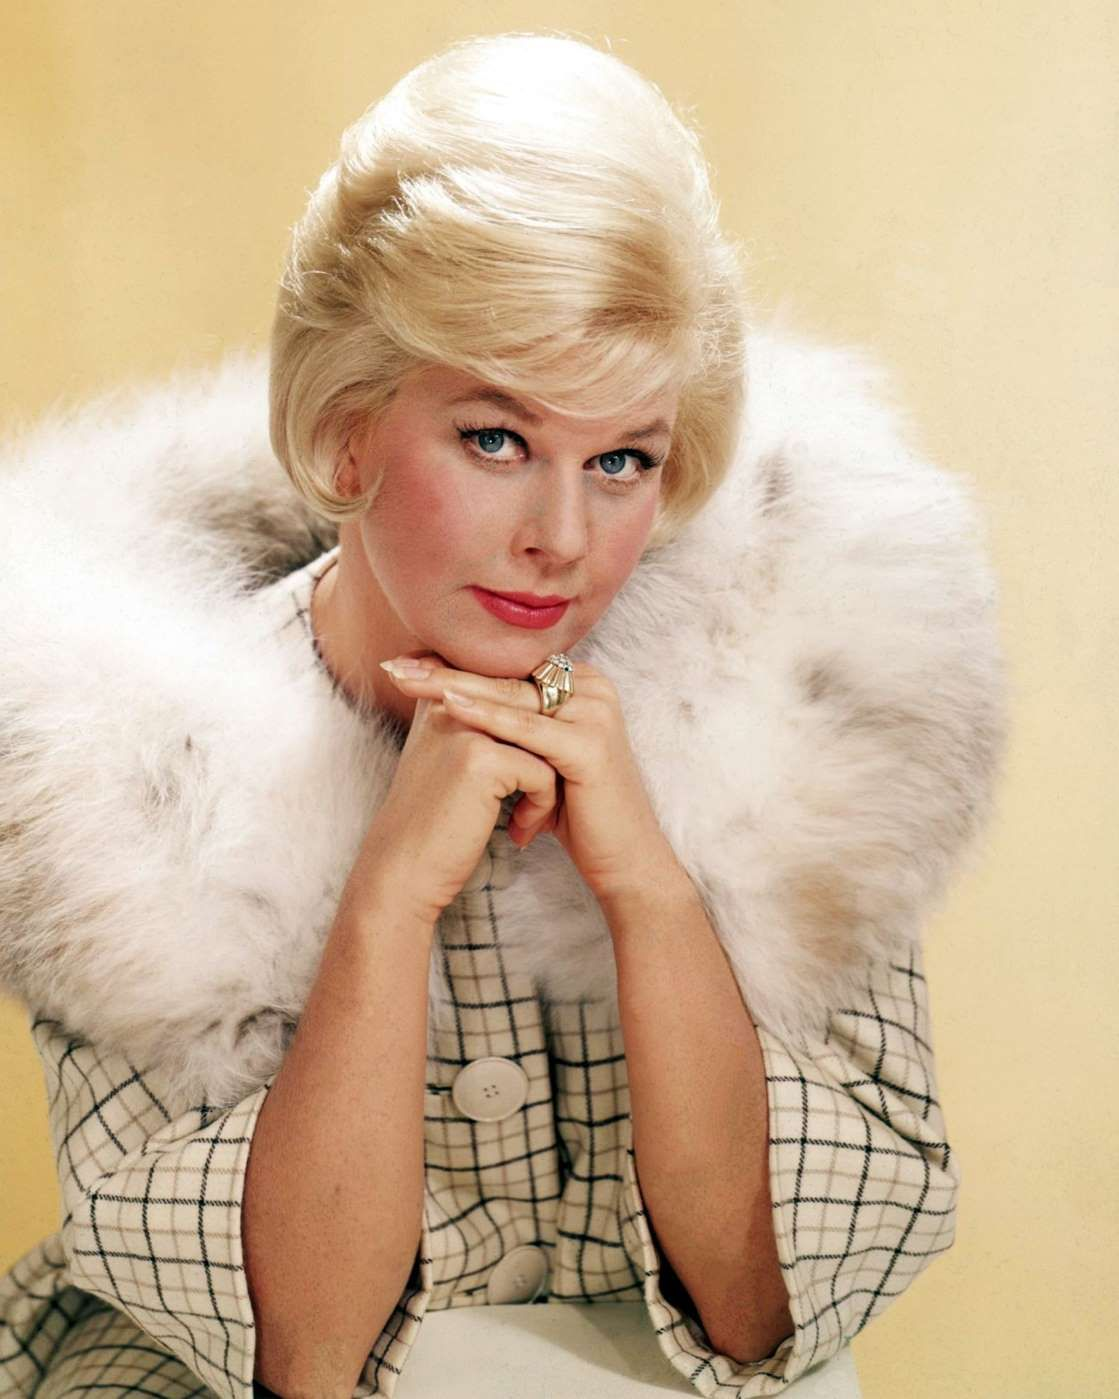 Doris Day's grandson says her manager blocked him from seeing her